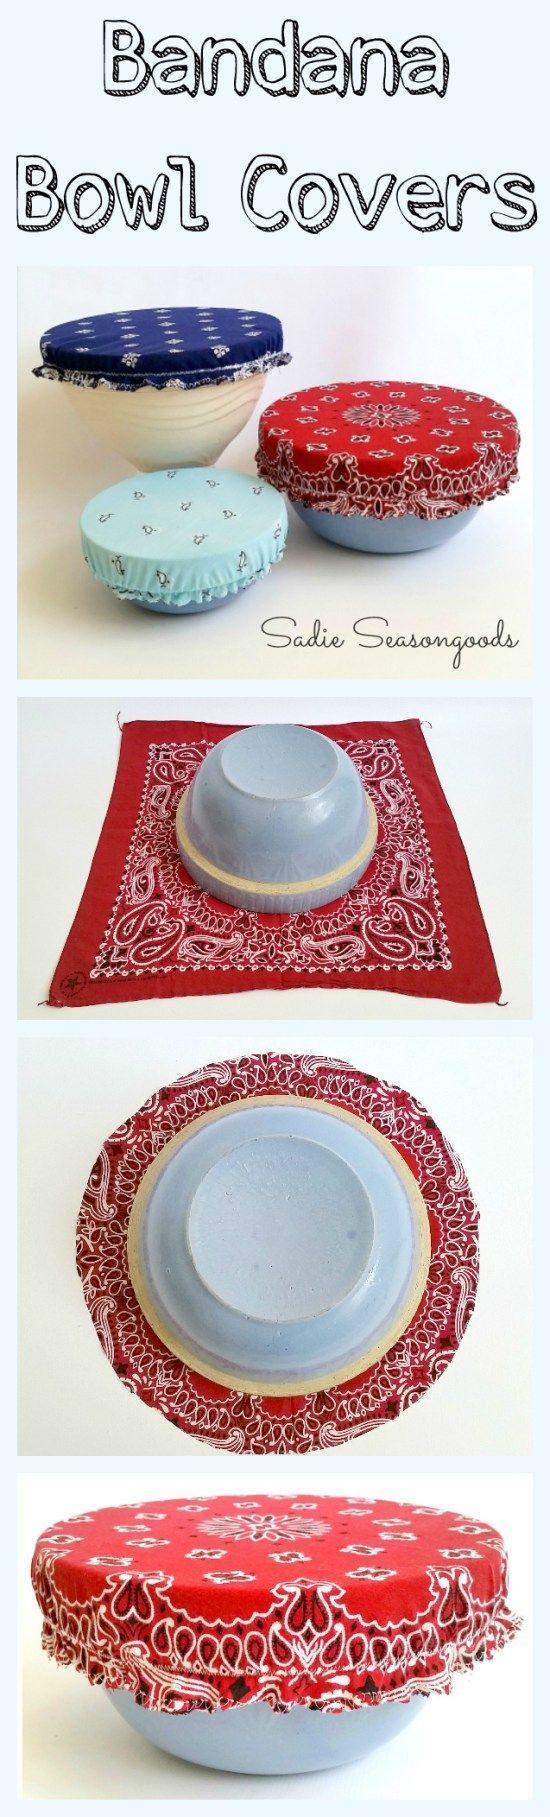 Just in time for ..DIY reusable, washable bowl covers from bandanas! Your lidless mixing bowl gets some patriotic panache with a vintage bandana bowl cover, which will keep the bugs out when sitting on the picnic table! Such a fun way to repurpose a bandana...easy to make and oh so pretty! Perfect upcycle project